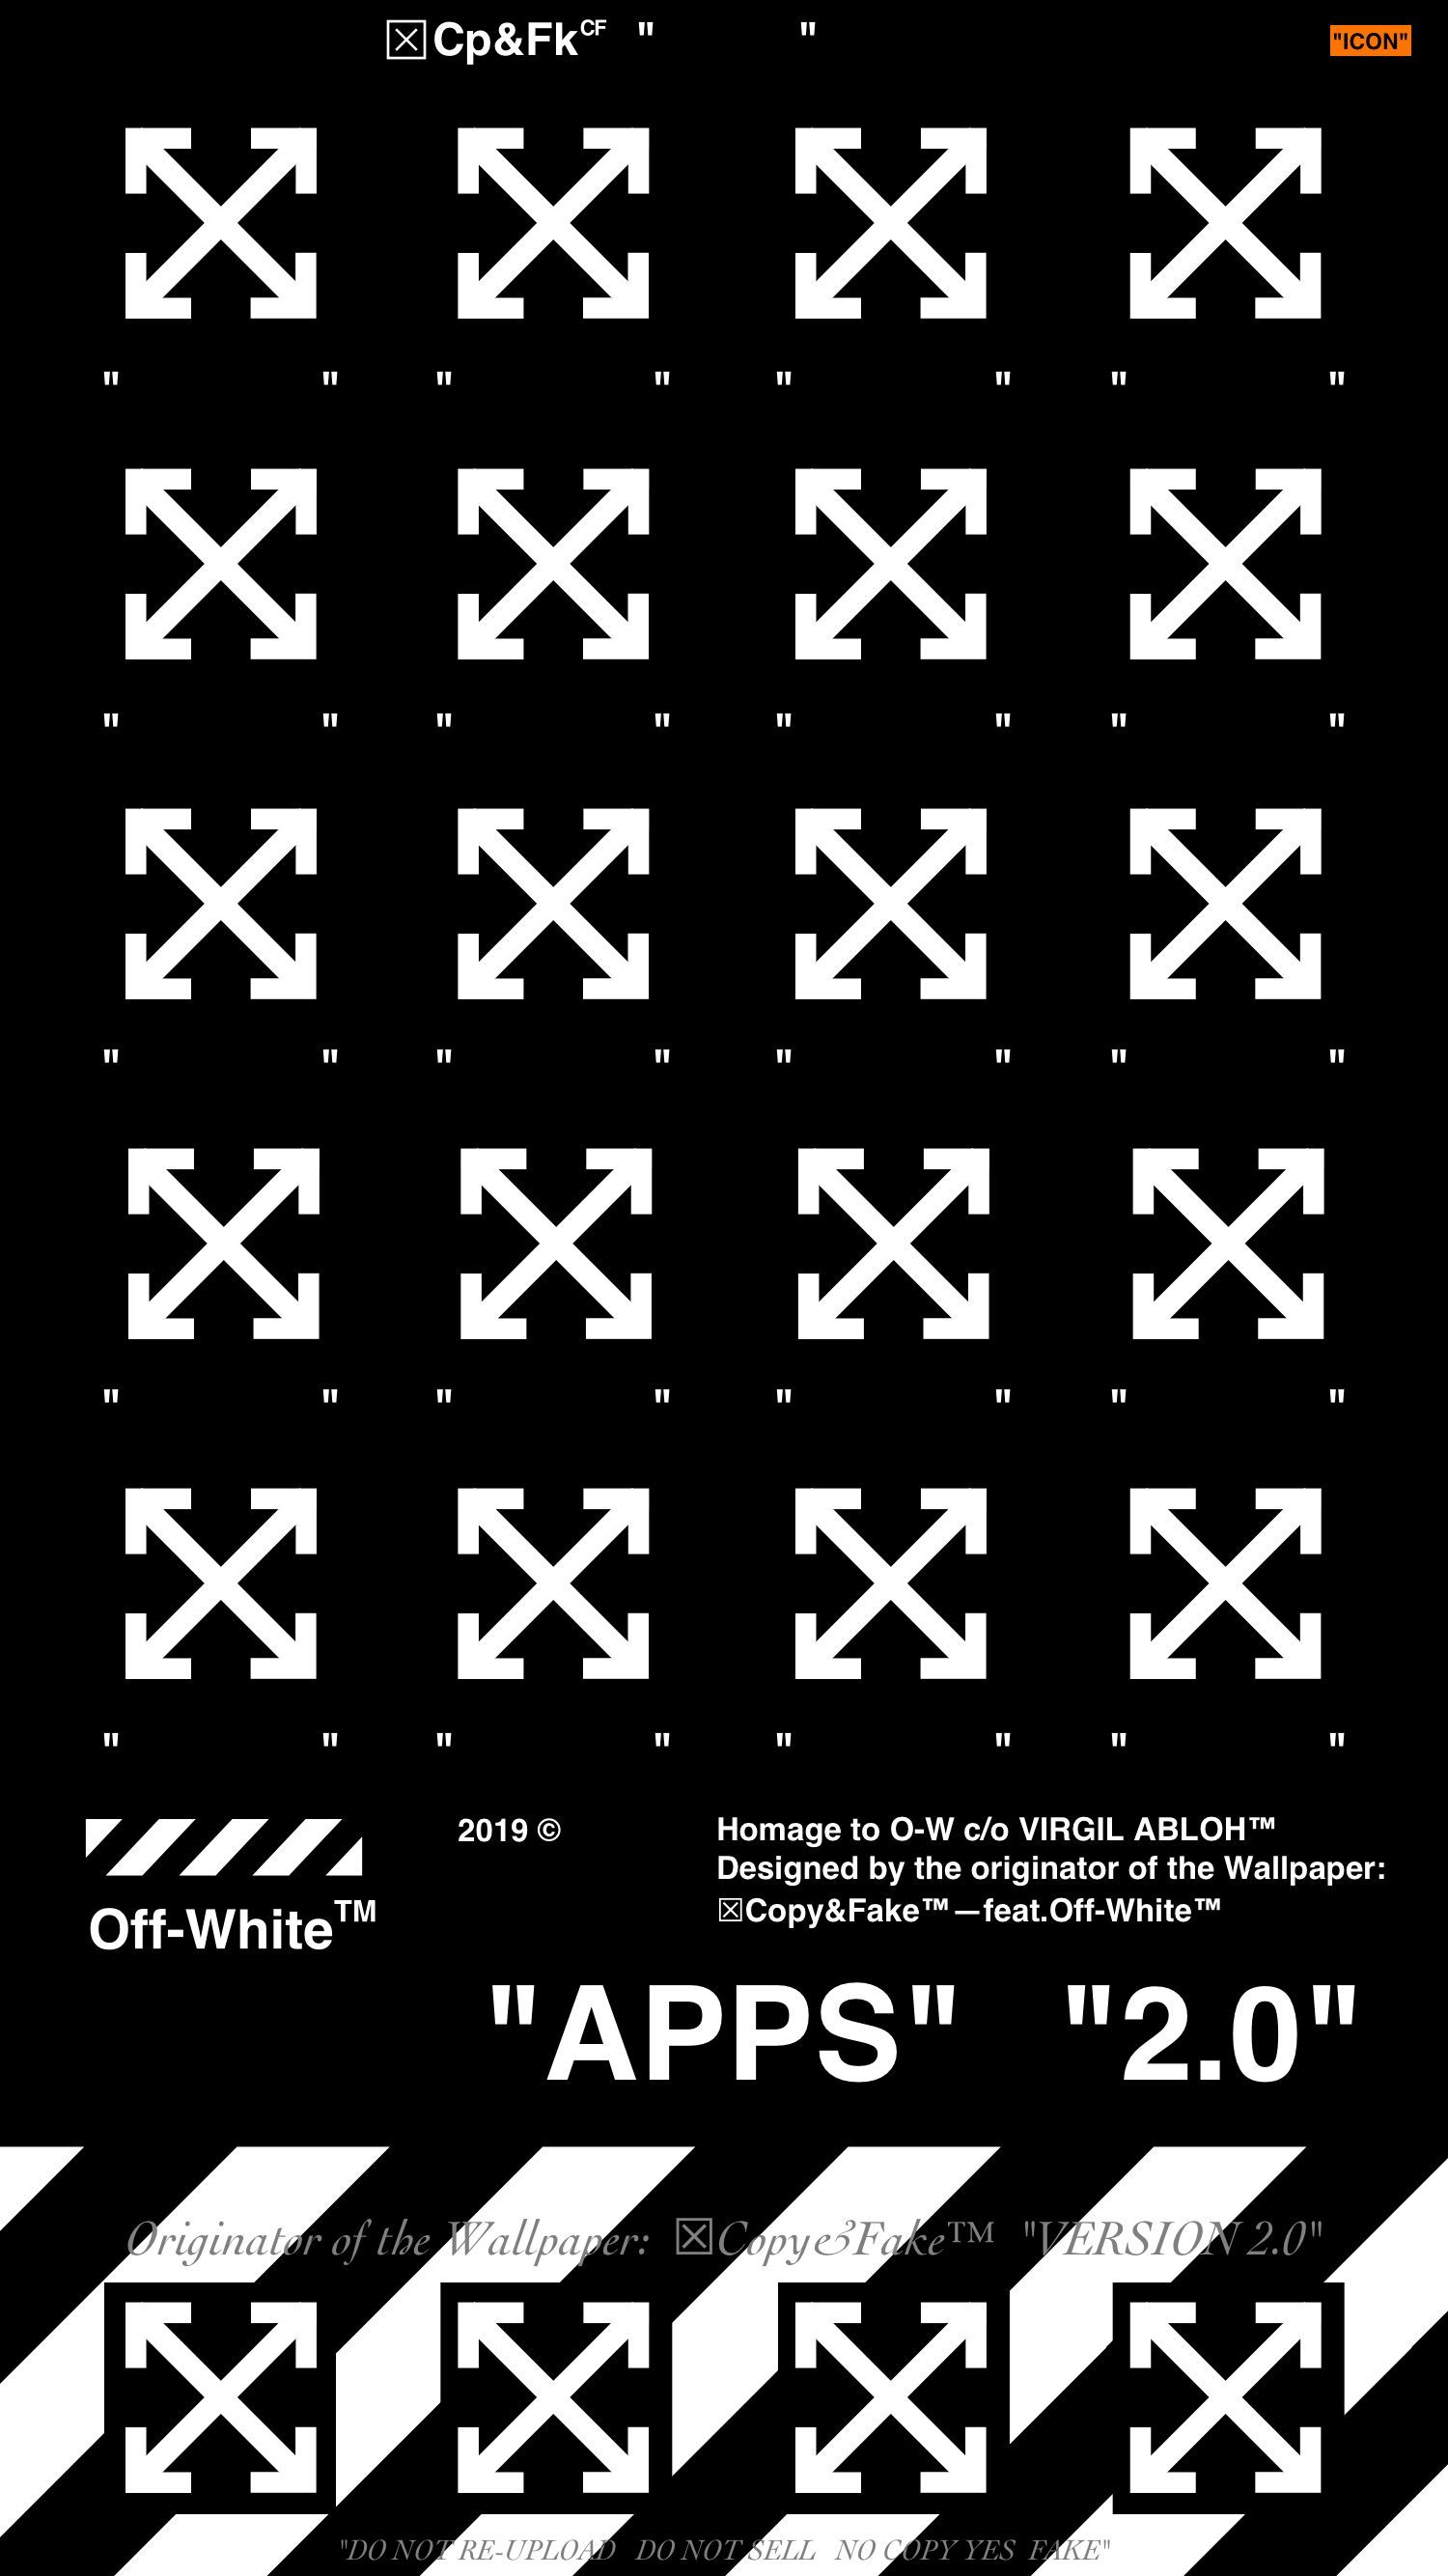 Off White Wallpaper For Iphone Home 2 0 4th Iphone Wallpaper Off White Hypebeast Iphone Wallpaper White Wallpaper For Iphone Cool off white wallpaper for iphone 7